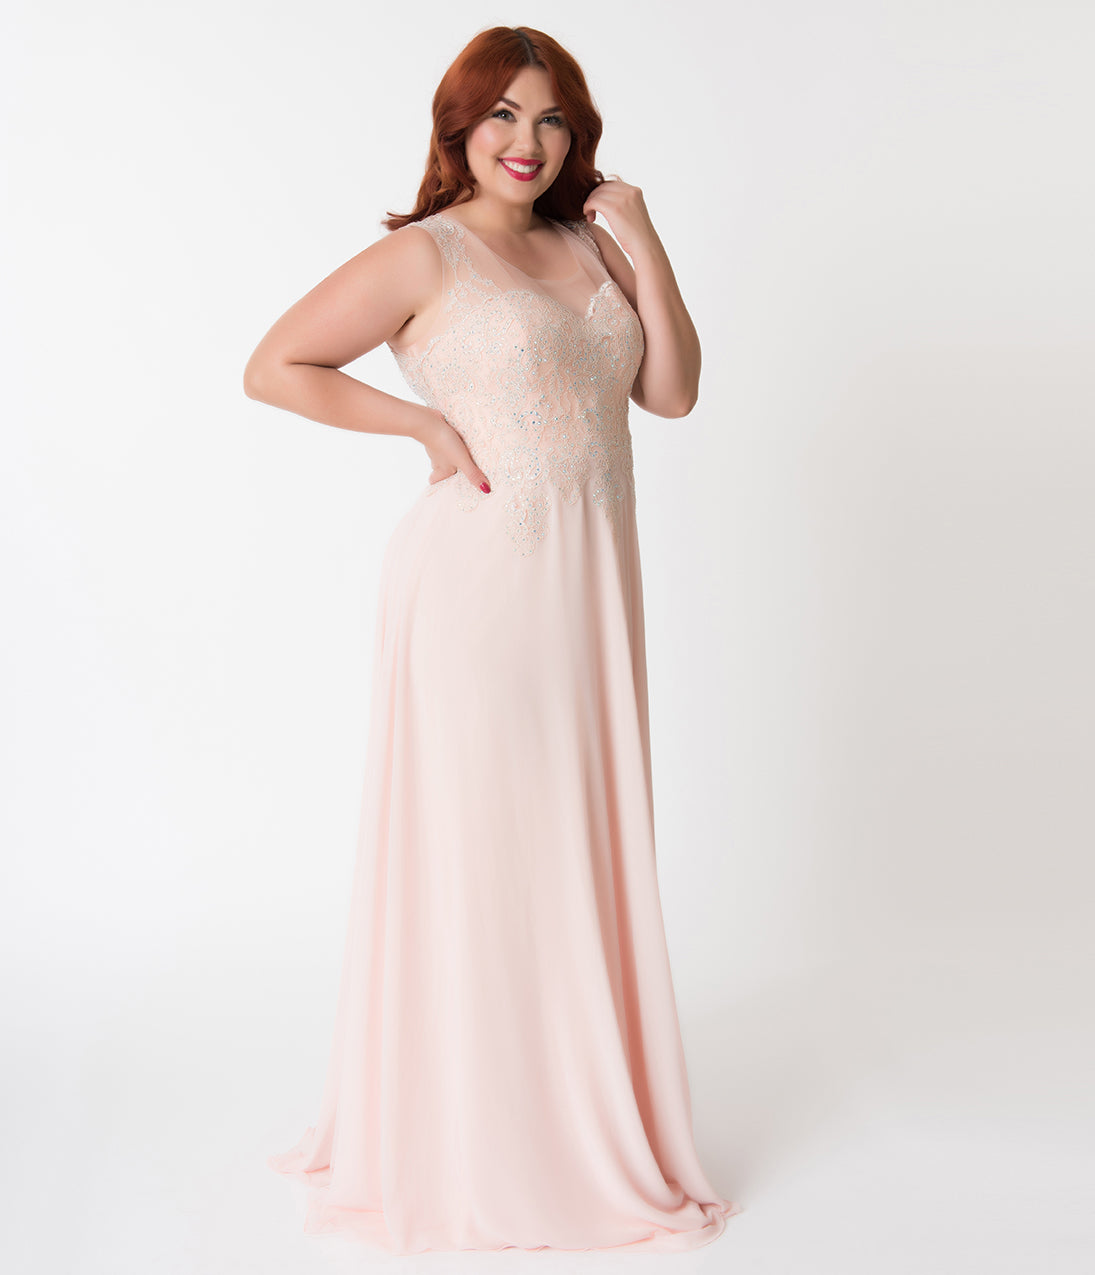 1950s Plus Size Fashion & Clothing History Plus Size Peach Pink  Silver Rhinestone Embellished Chiffon Gown $142.00 AT vintagedancer.com